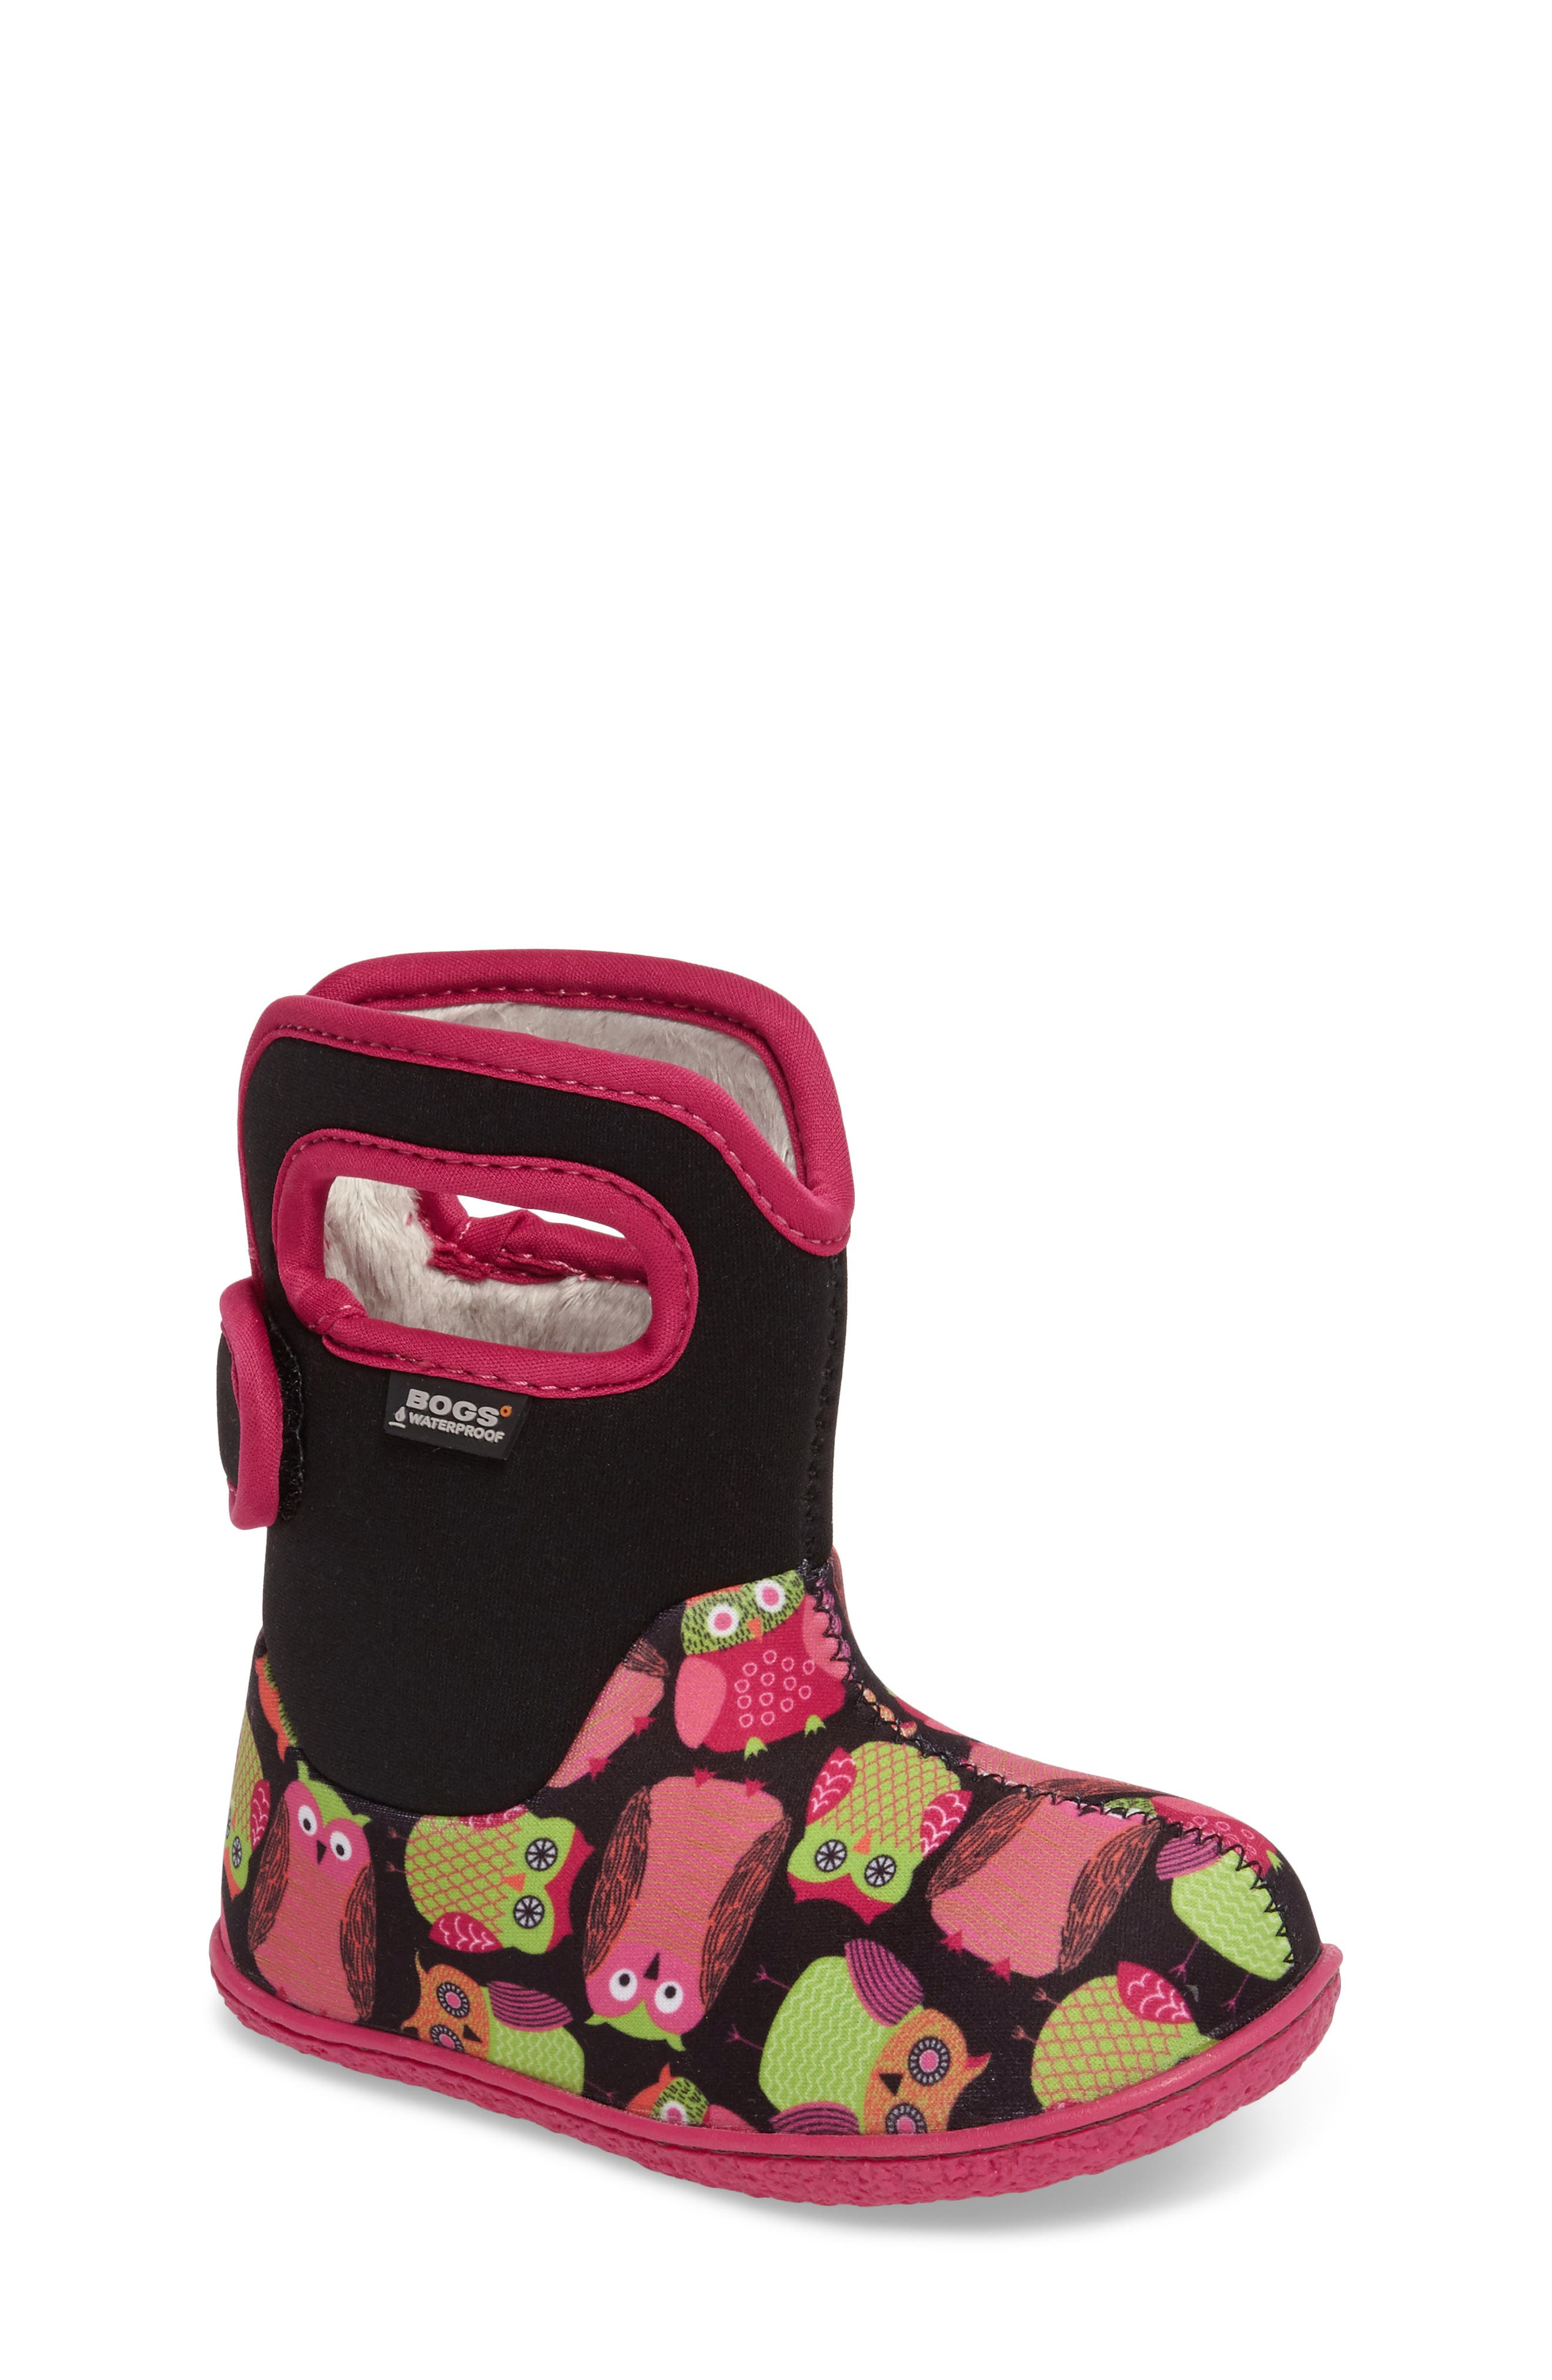 Alternate Image 1 Selected - Bogs Baby Bogs Classic Owls Insulated Waterproof Boot (Baby, Walker & Toddler)